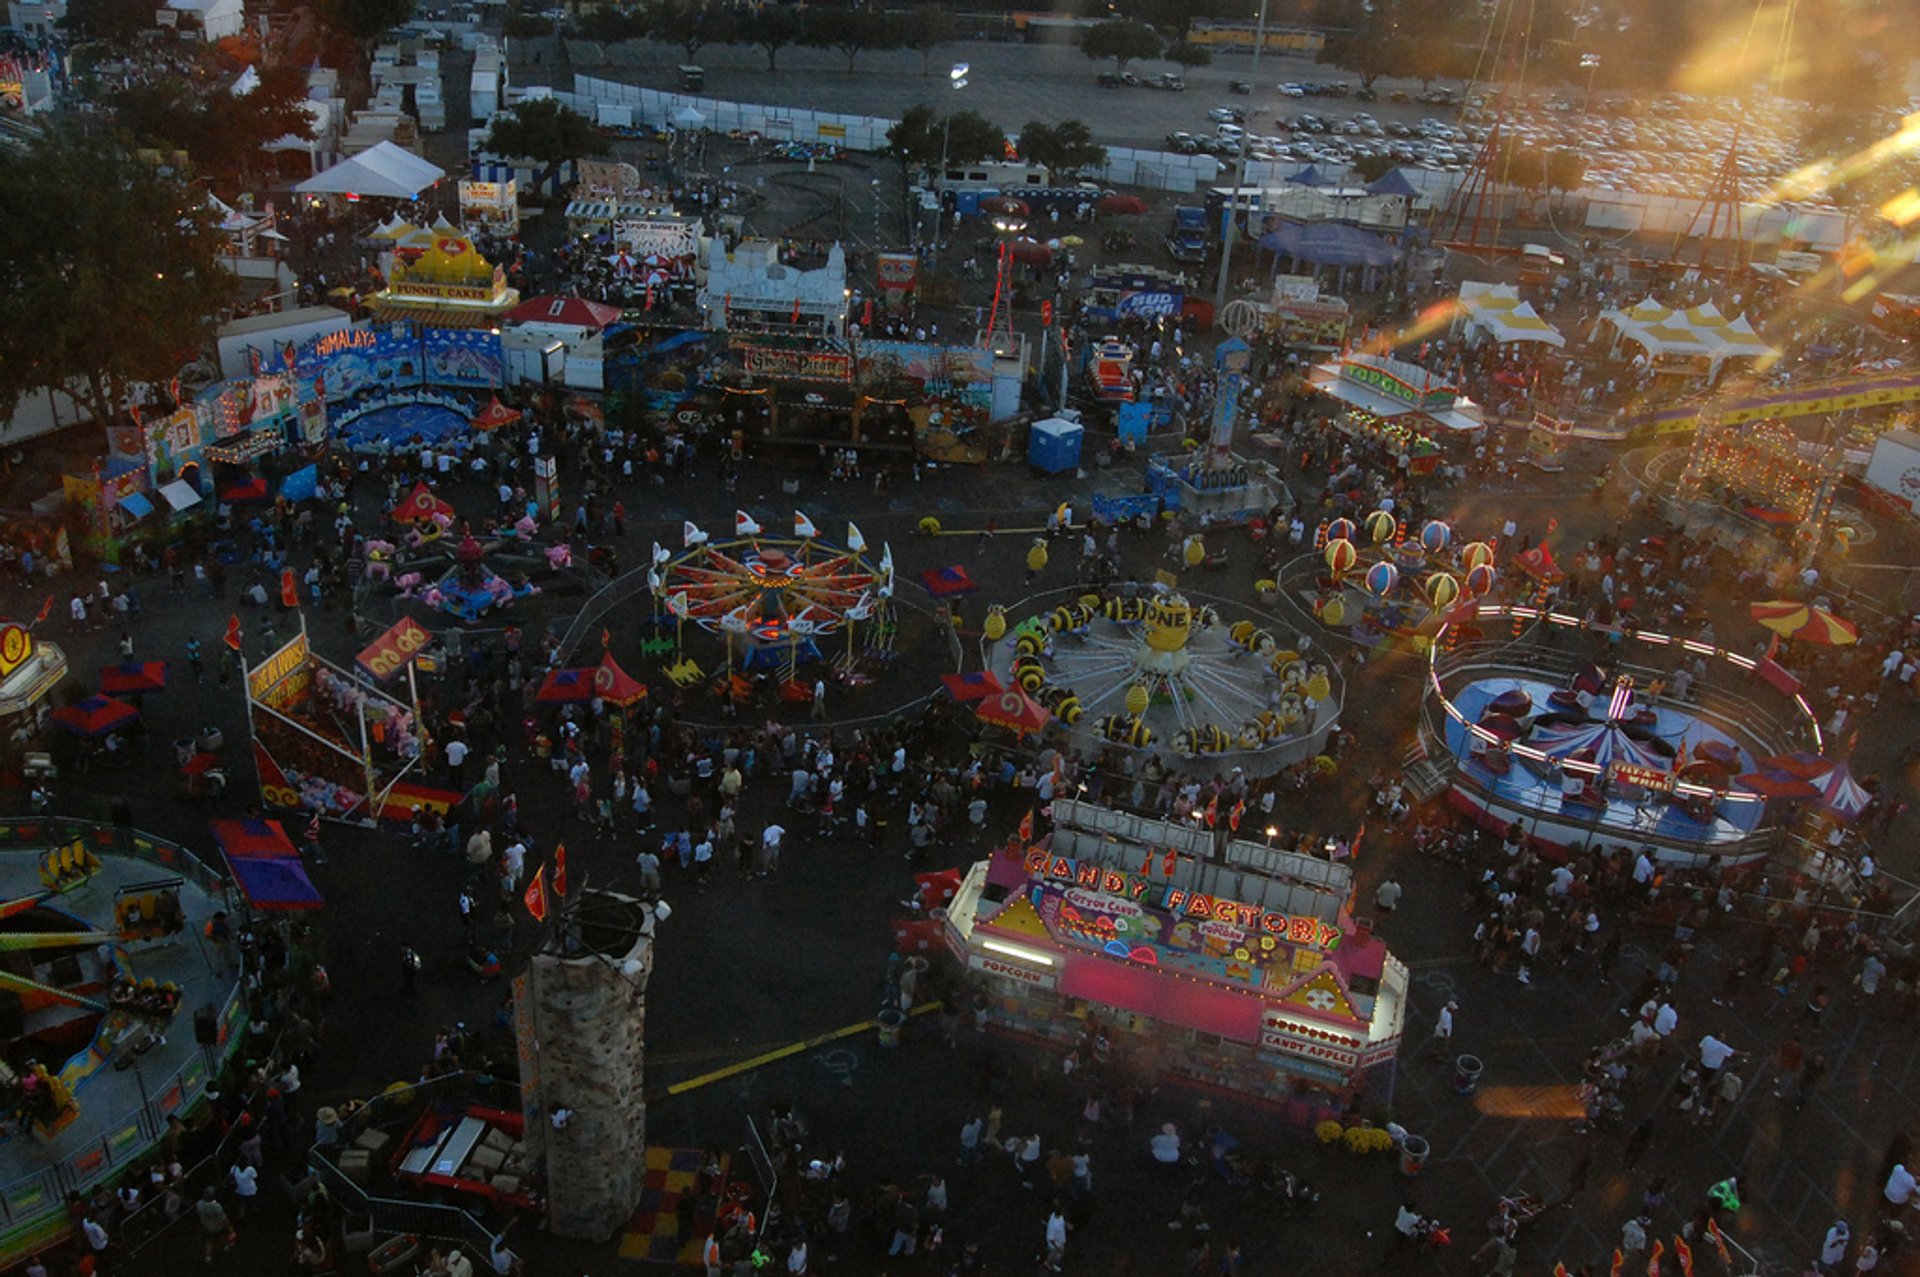 Best time for LA County Fair  in Los Angeles 2020